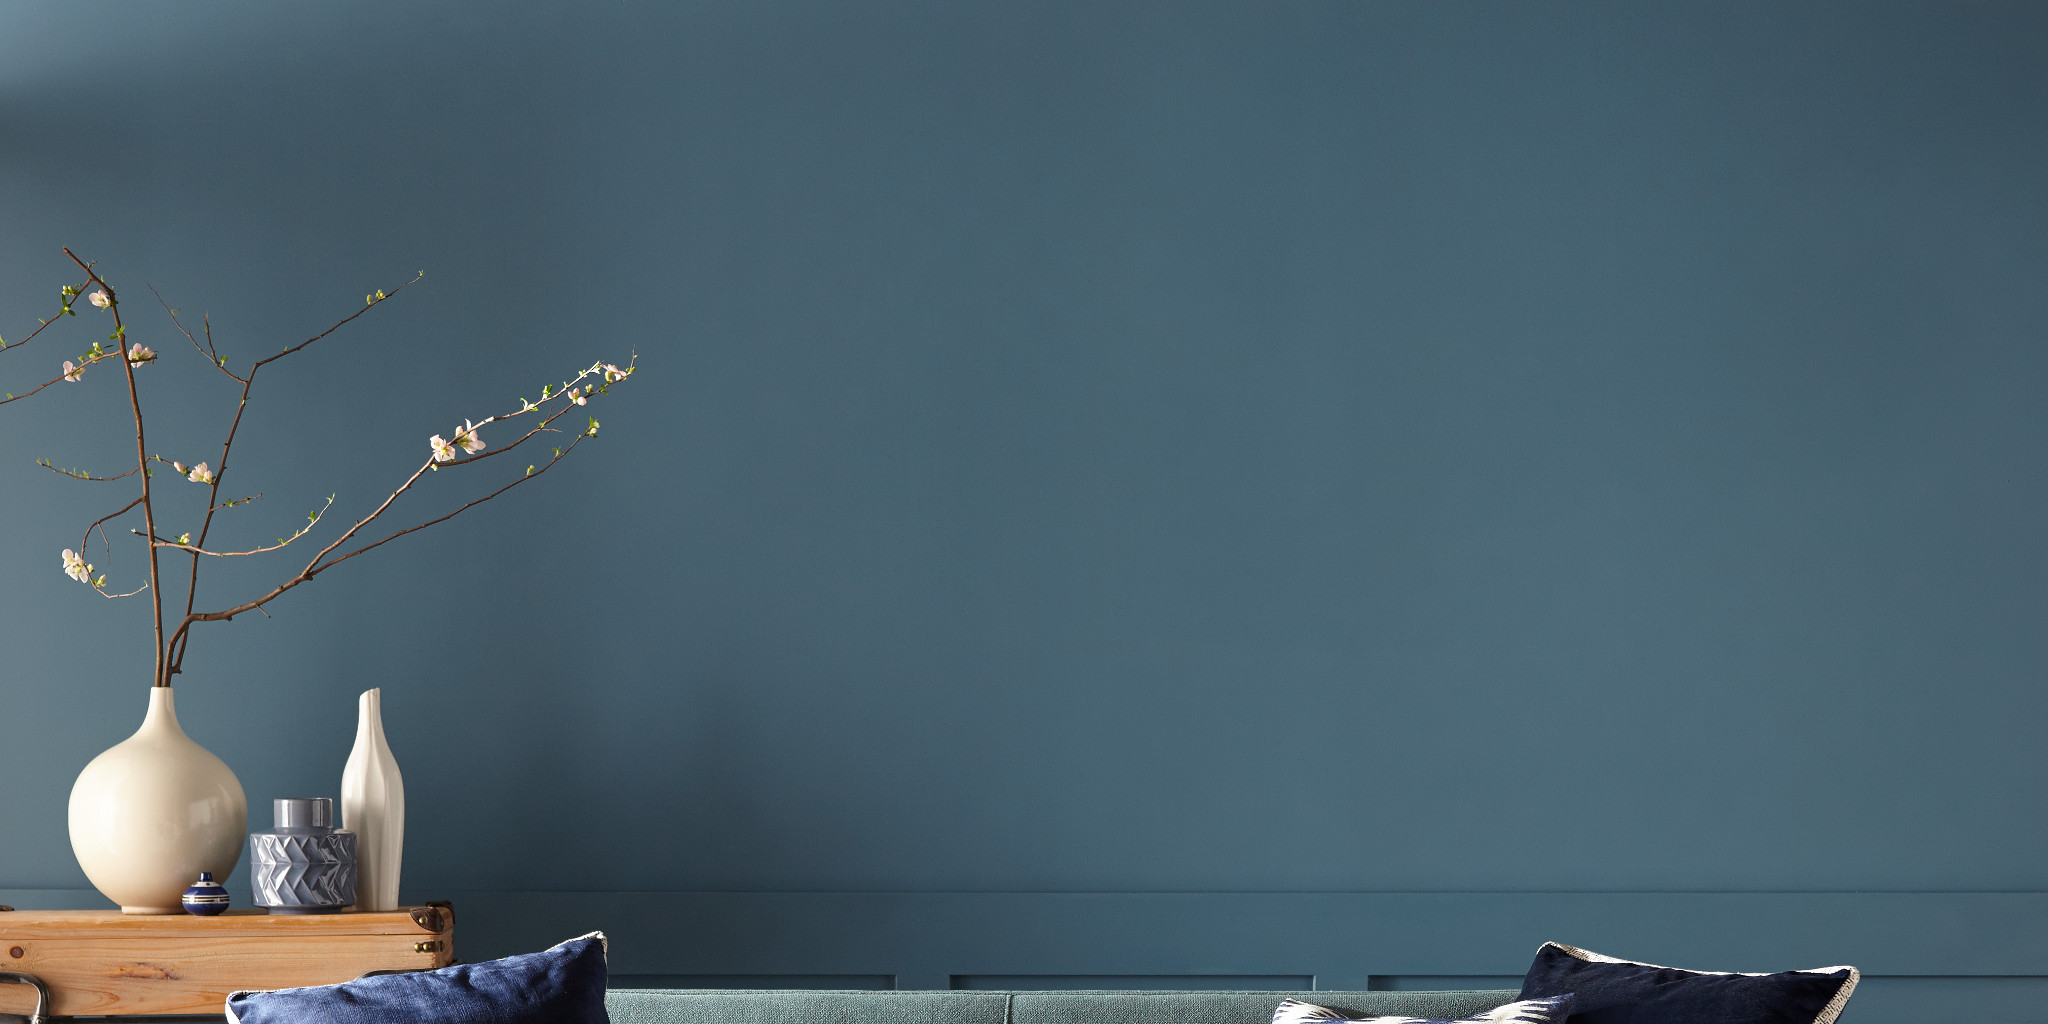 Behr Paint S 2019 Color Of The Year Is Blueprint And It S So Chic